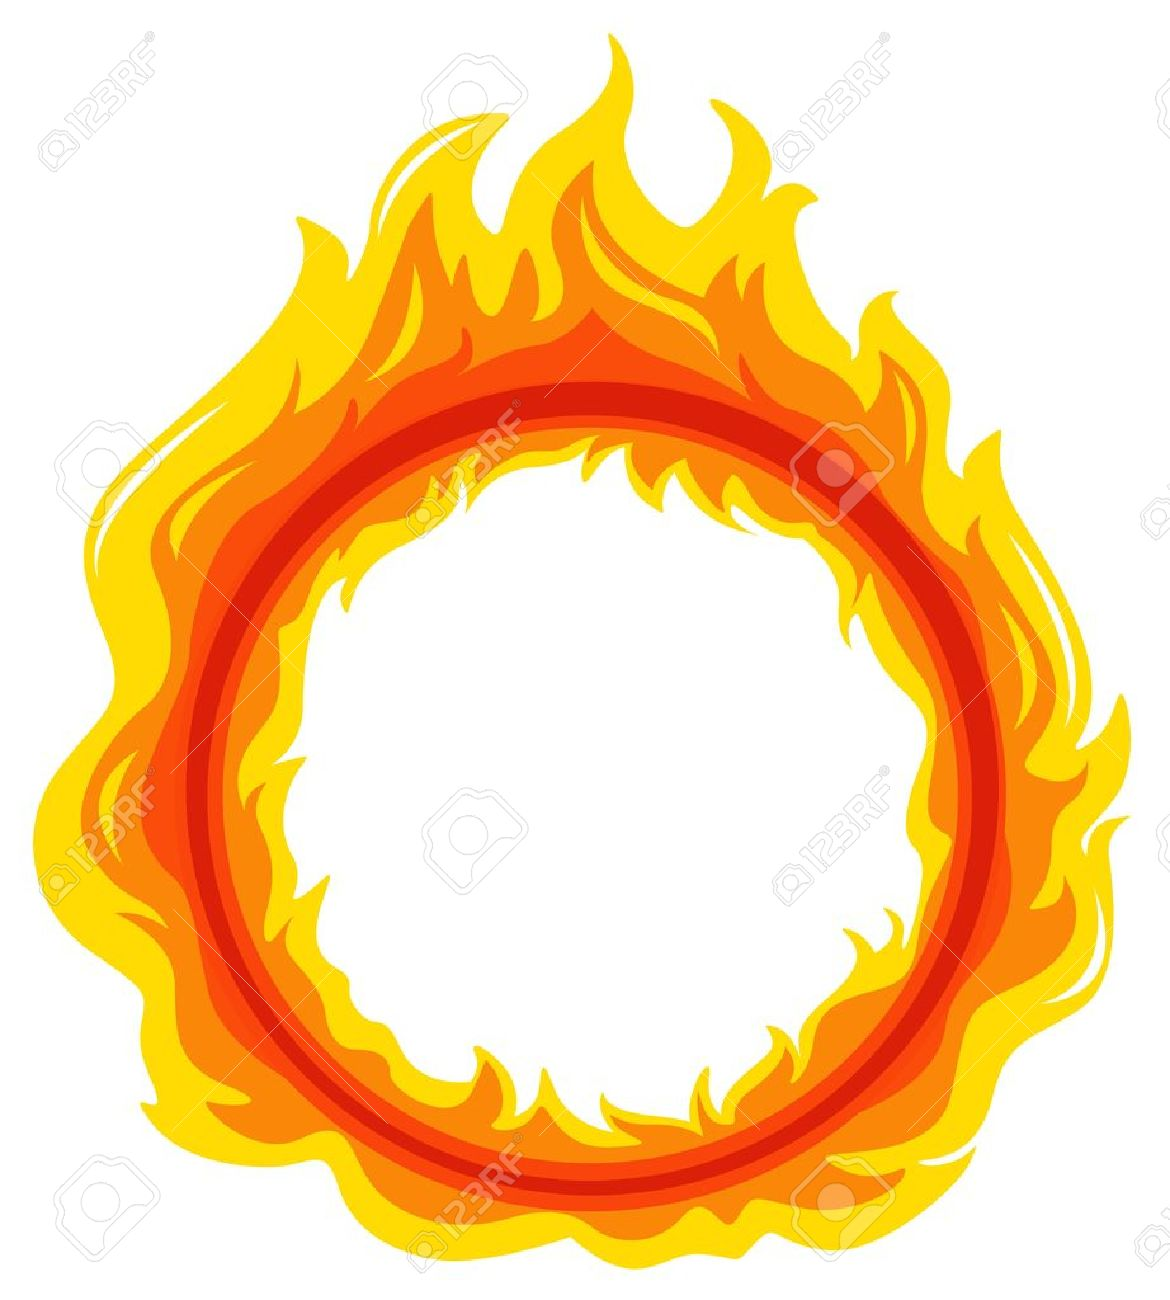 Illustration of a fireball on a white background - 18715798